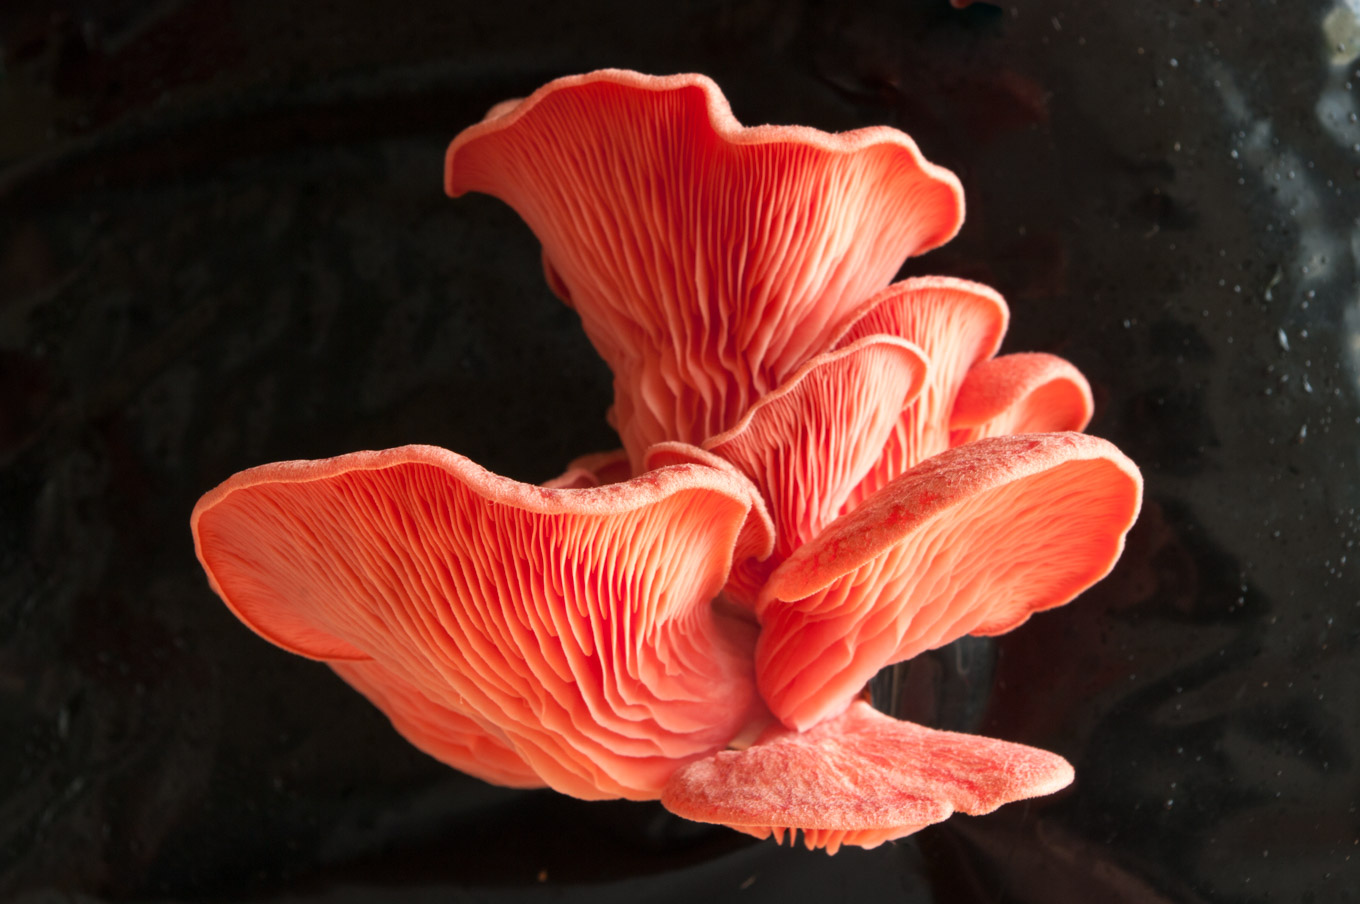 How to Grow Oyster Mushrooms – Growing your own mushrooms is exciting and yields amazing produce you can't buy in the shops. Learn how to grow your own mushrooms and get recipe ideas for what to do with your bounty. By @deliciouscratch | deliciousfromscratch.com